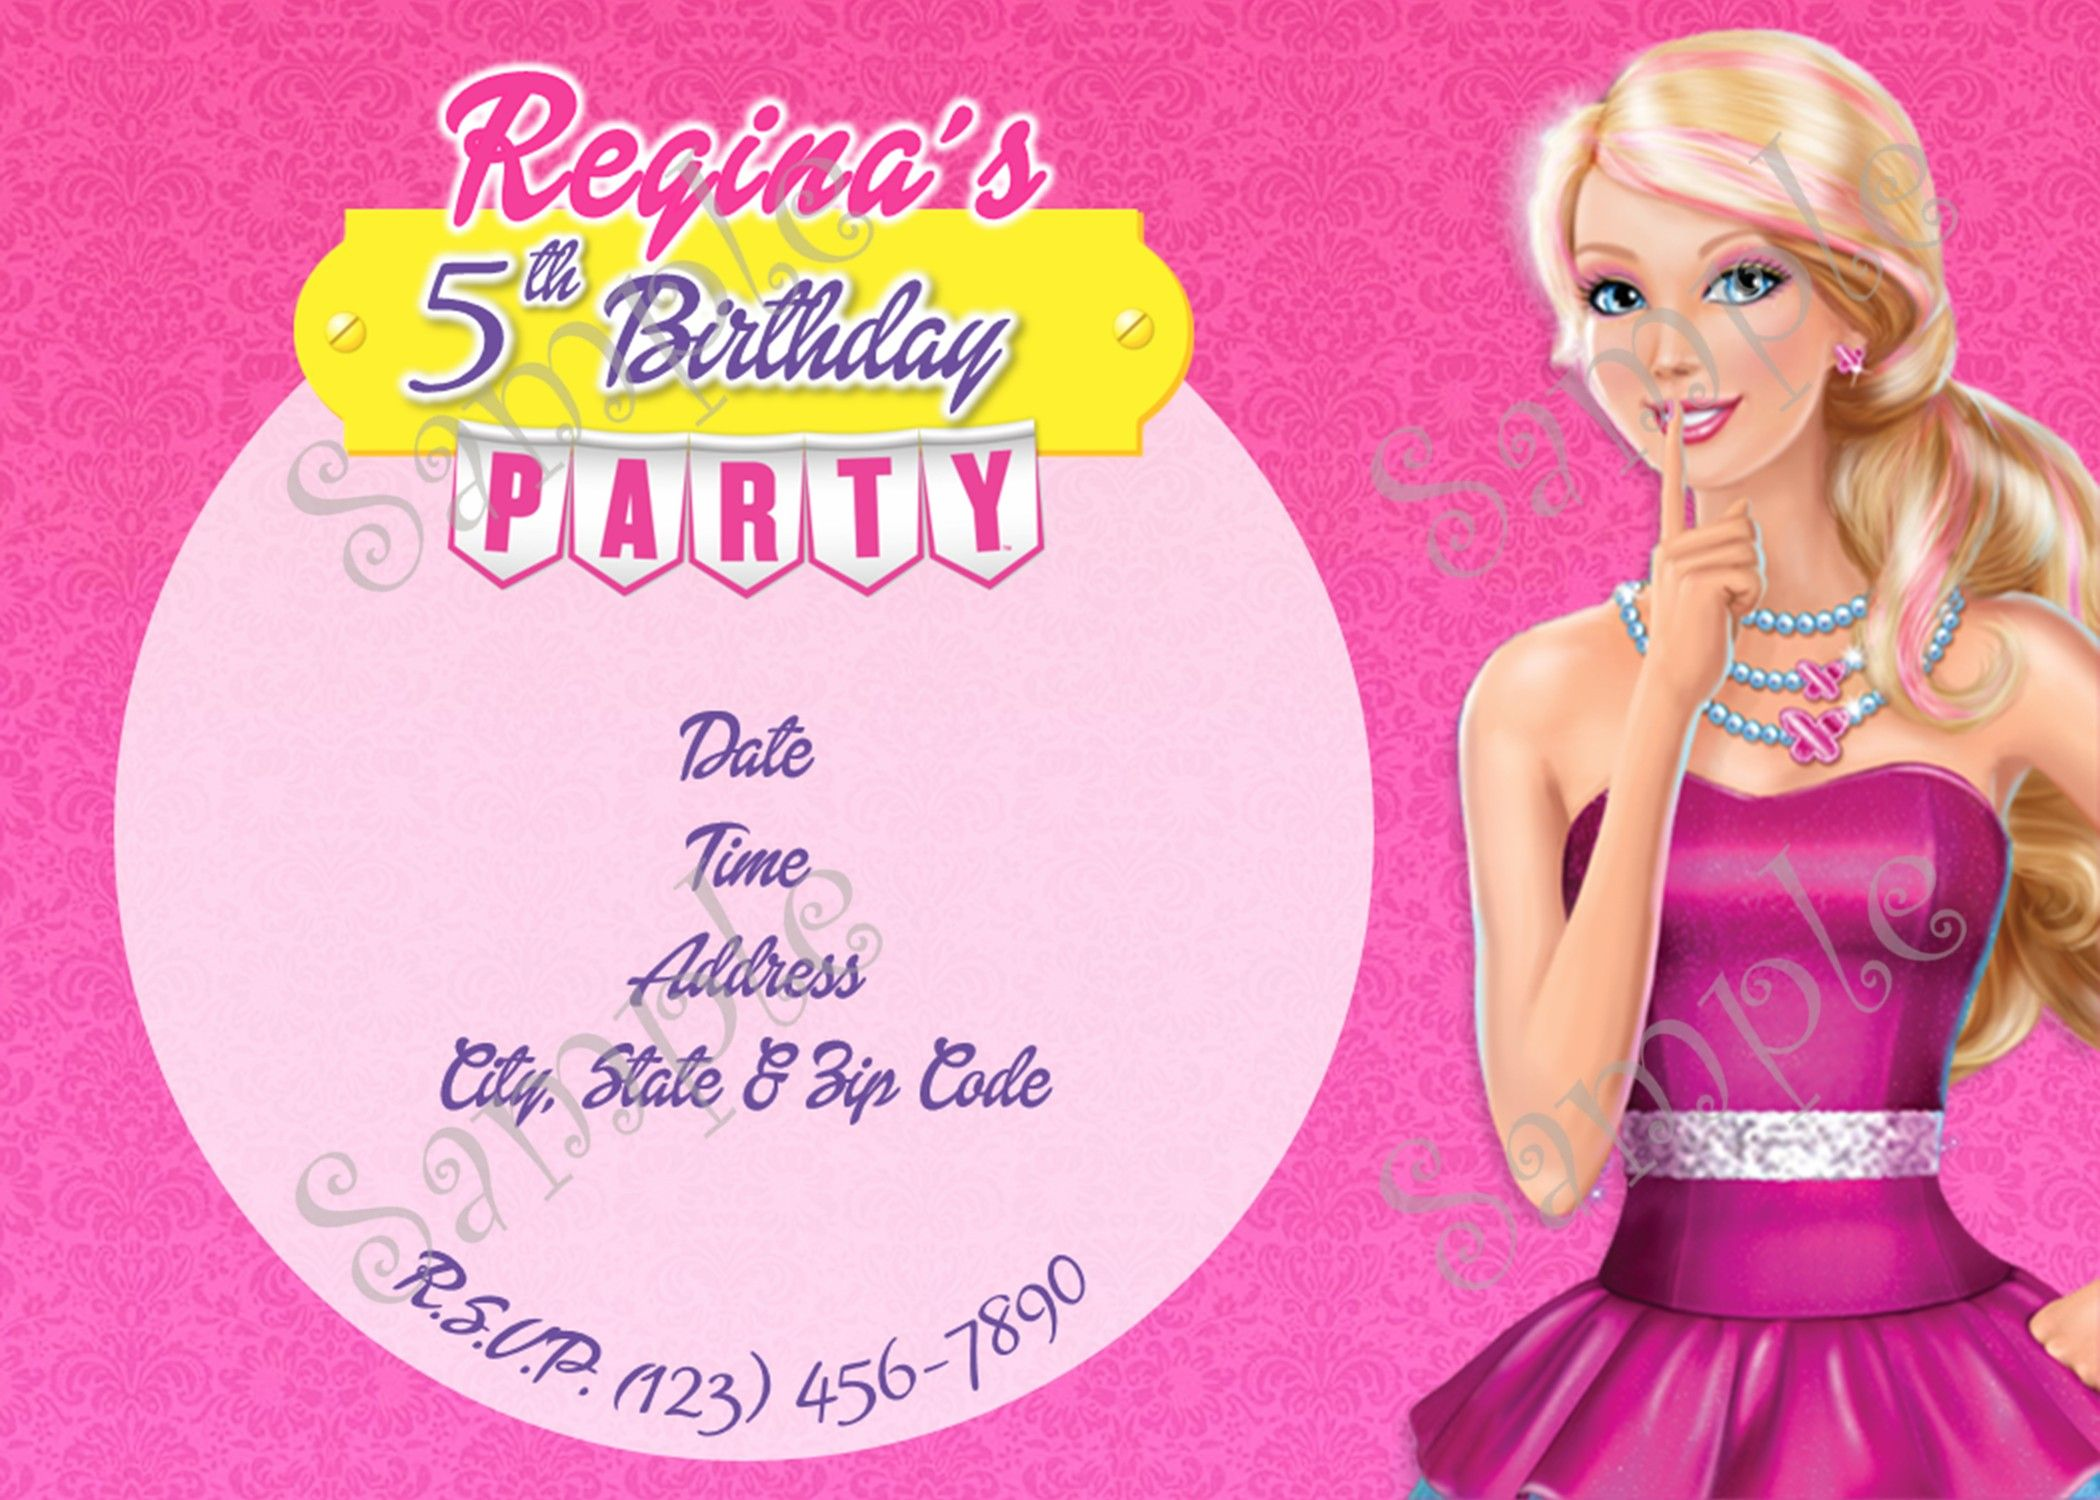 Barbie Birthday Party Invitation 5x7 or 4x6 Inches | Barbie ...